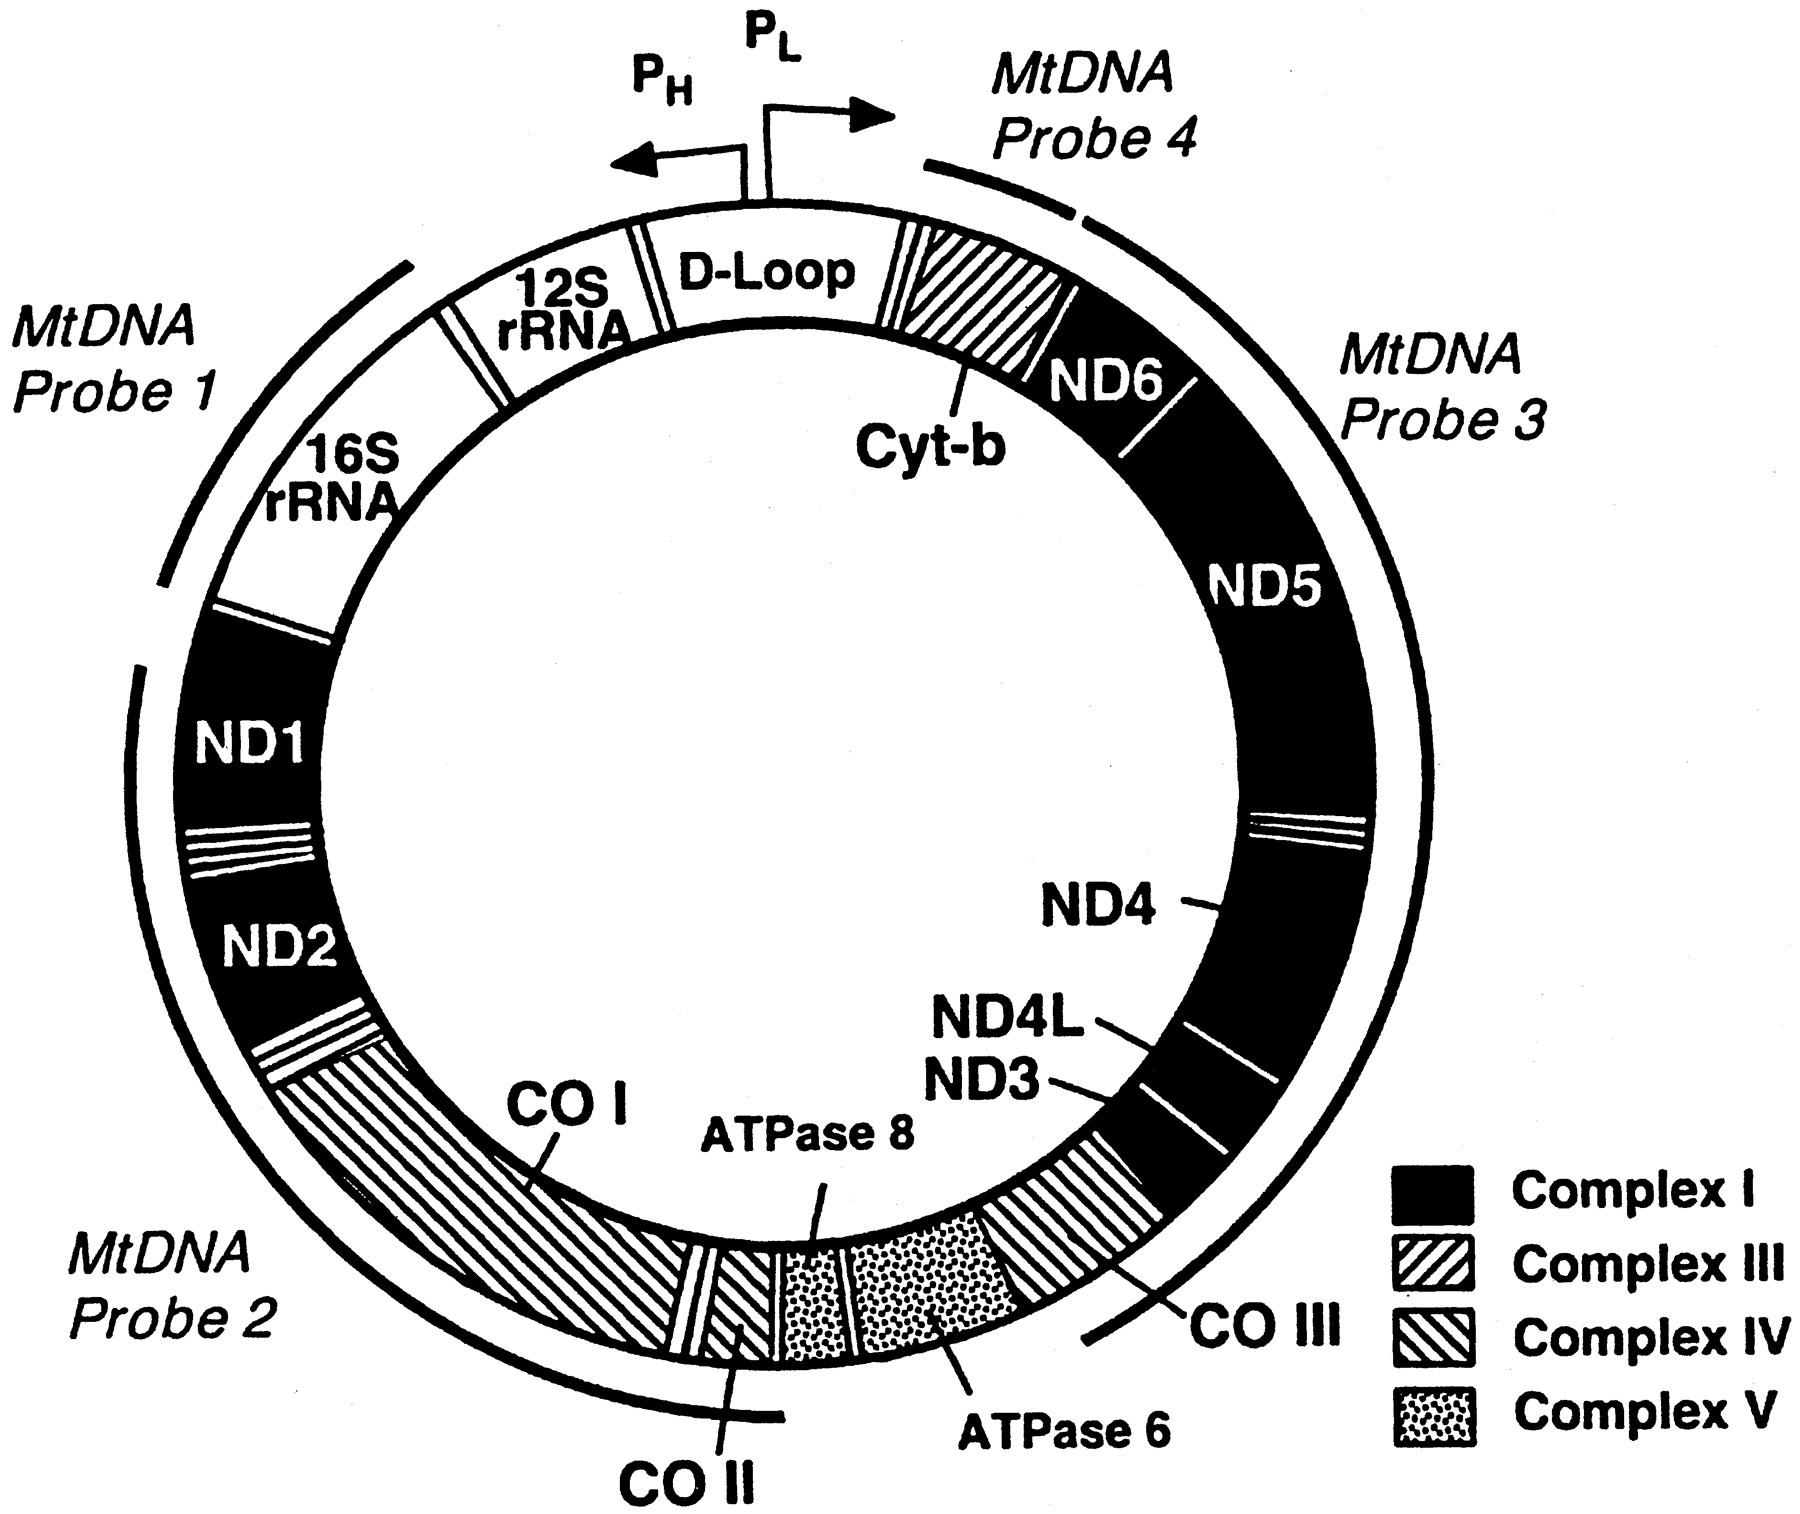 Mitochondrial Dna Damage And Dysfunction Associated With Oxidative Stress In Failing Hearts